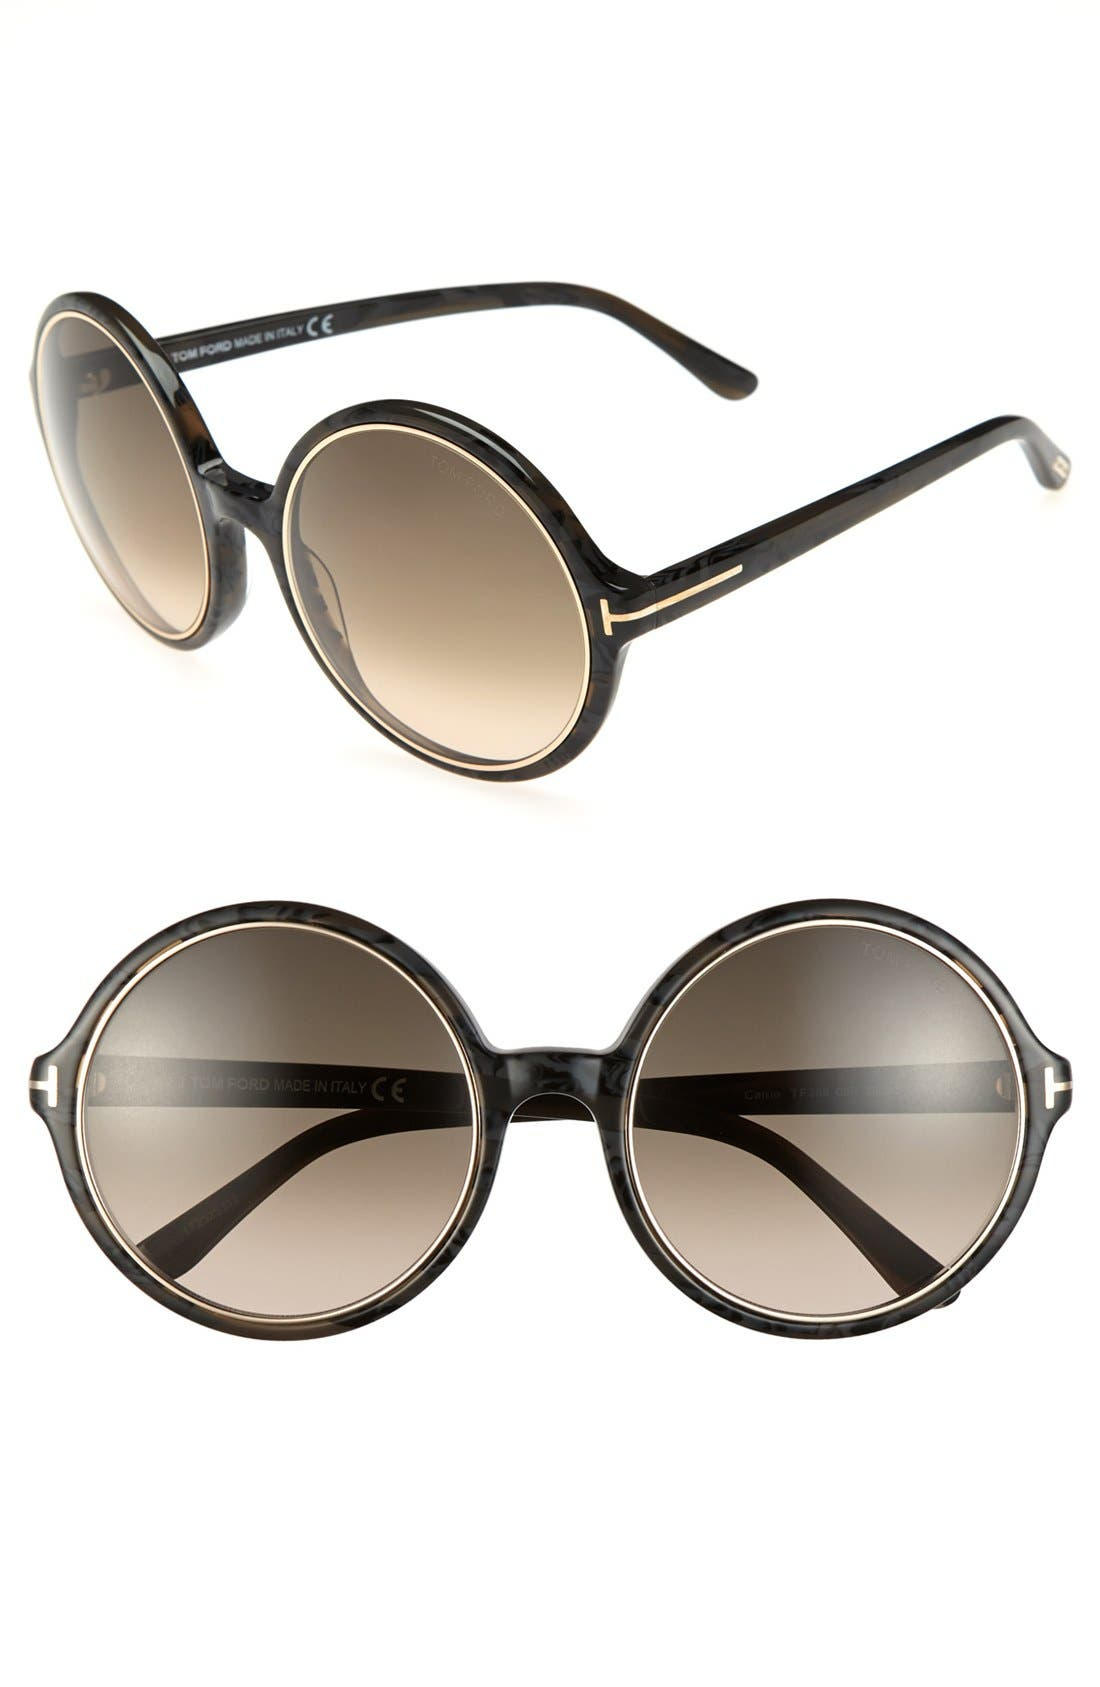 Alternate Image 1 Selected - Tom Ford 'Carrie' 59mm Sunglasses